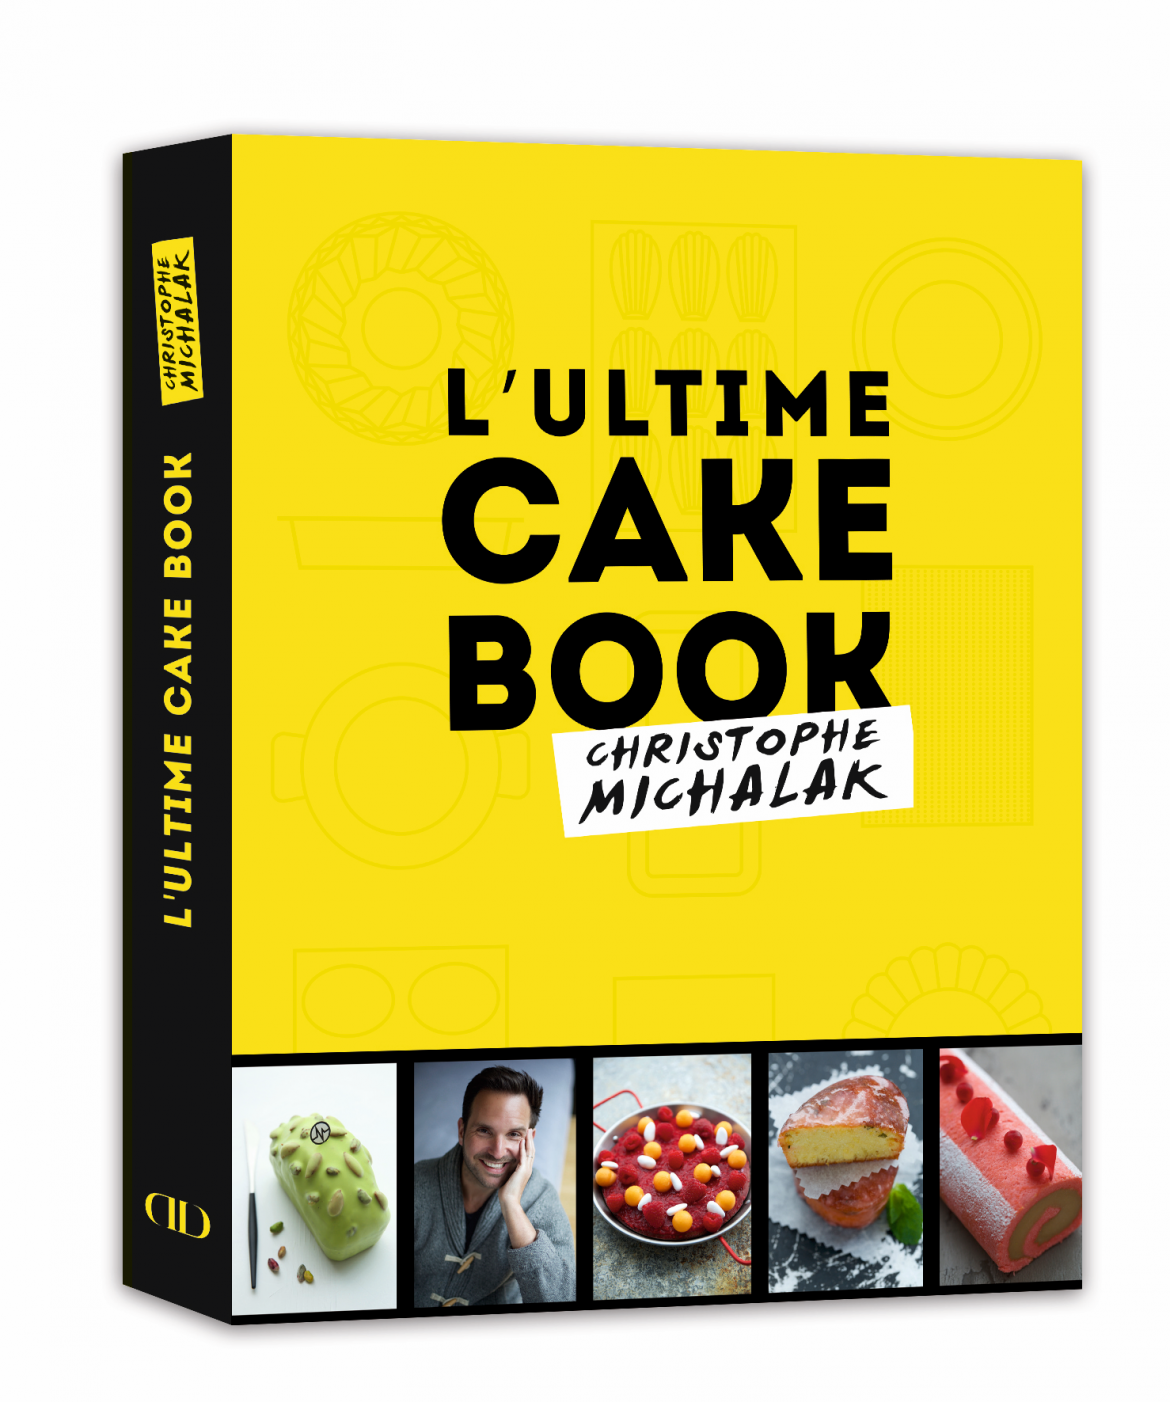 Couverture_L_Ultime_Cake_Book_Christophe_Michalak_3D - copie